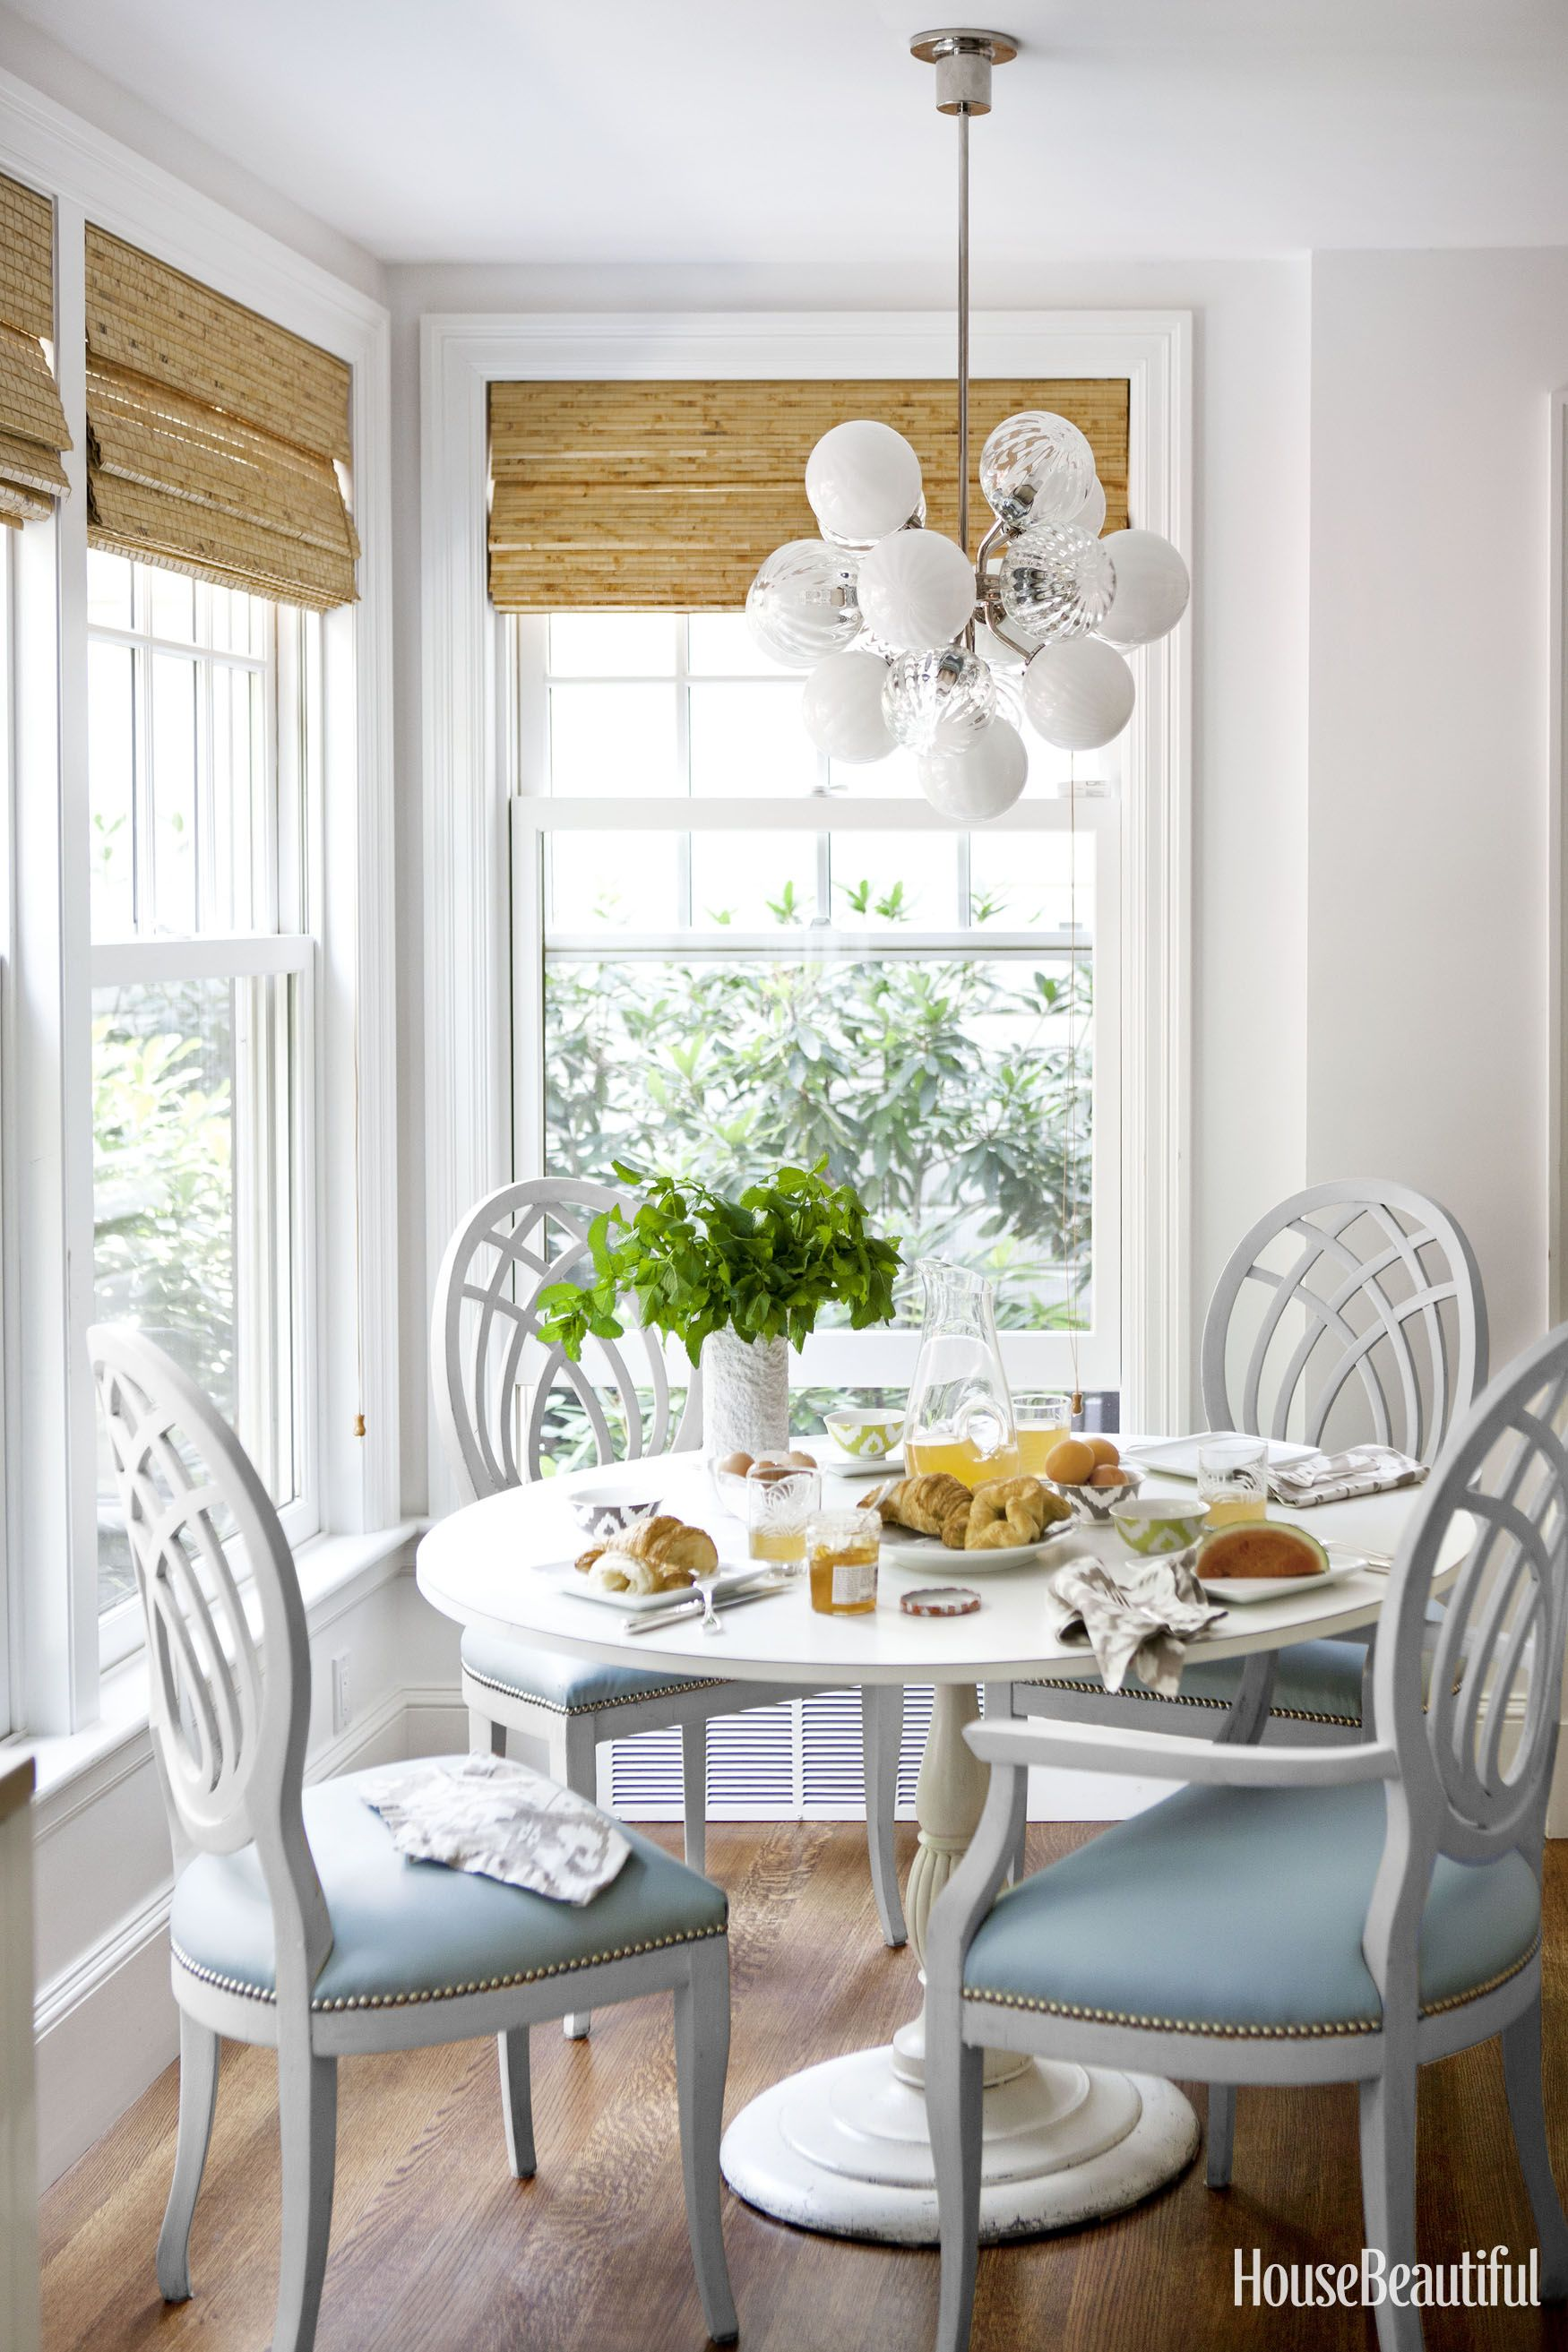 Cozy Breakfast Nook Ideas That Will Fit Any Style, Size, or Budget